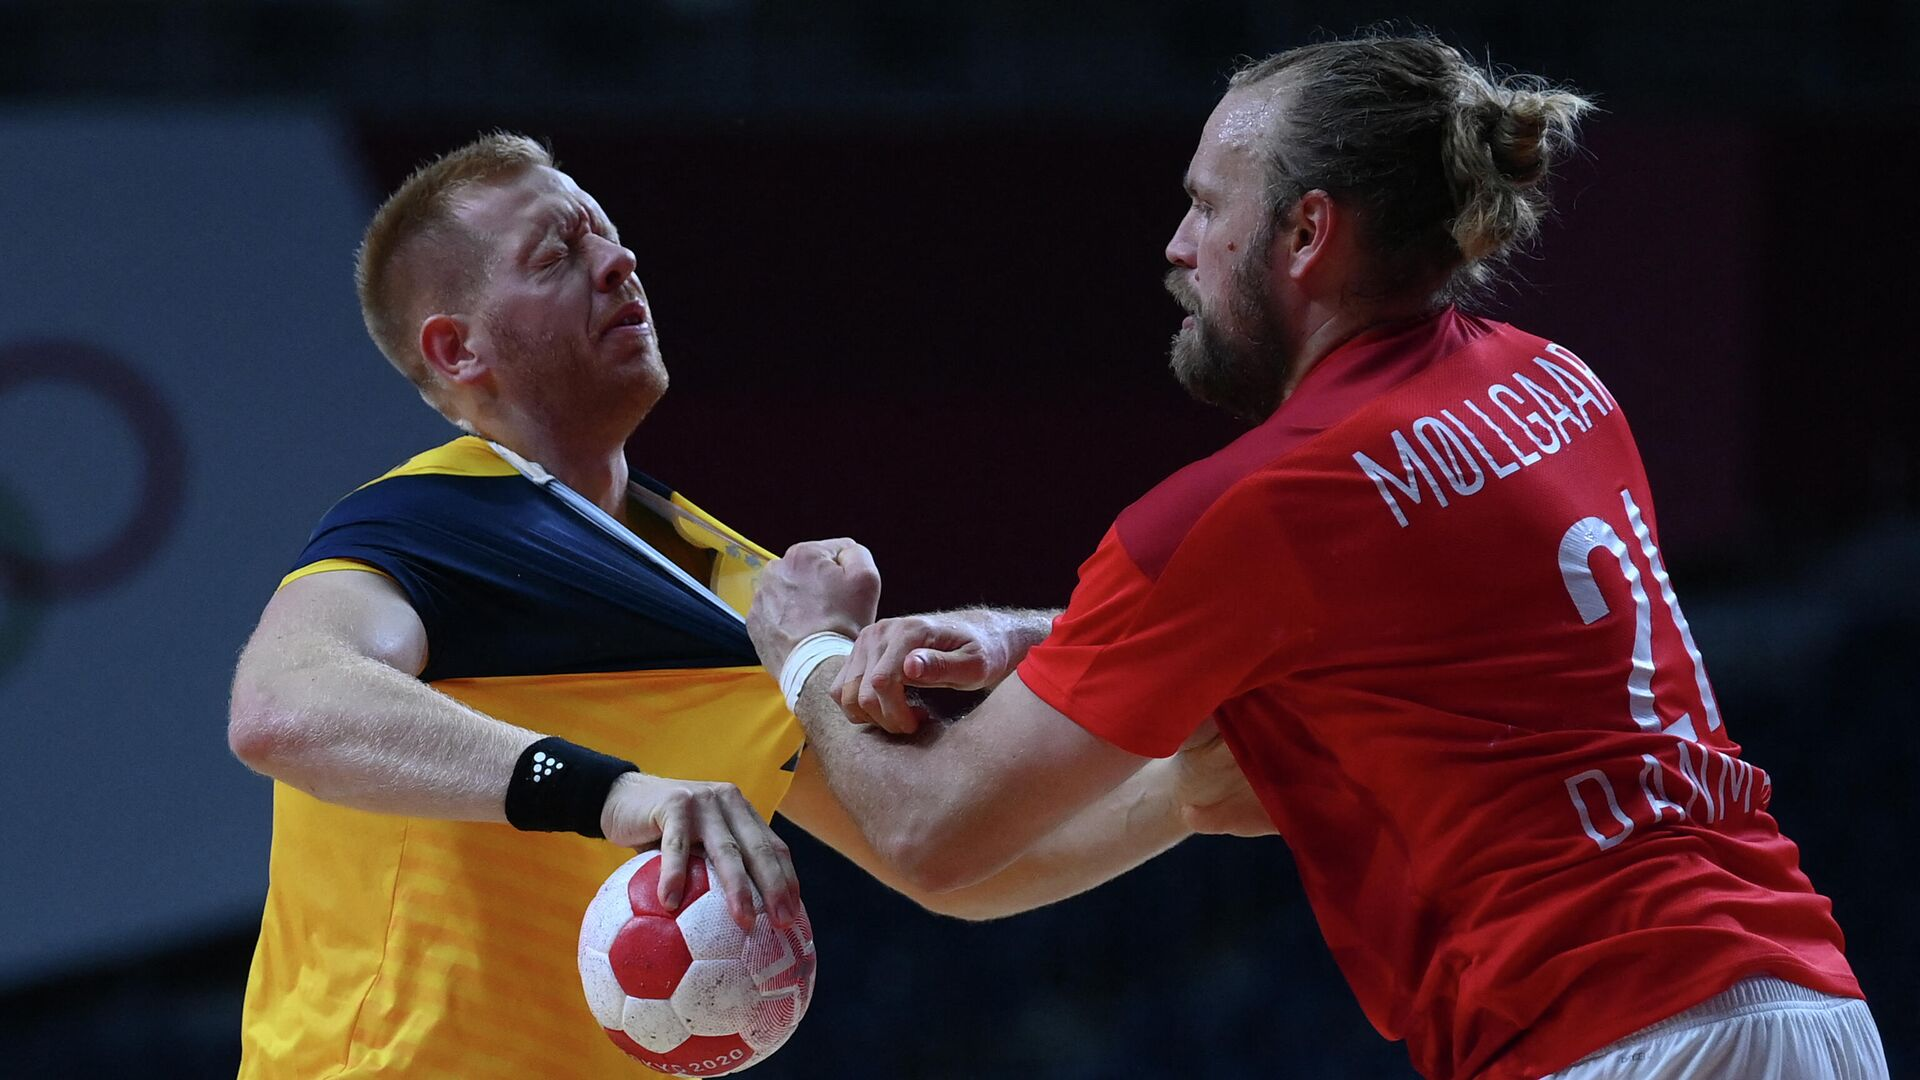 Sweden's centre back Jim Gottfridsson (L) vies with Denmark's left back Henrik Mollgard during the men's preliminary round group B handball match between Denmark and Sweden of the Tokyo 2020 Olympic Games at the Yoyogi National Stadium in Tokyo on August 1, 2021. (Photo by Franck FIFE / AFP) - РИА Новости, 1920, 01.08.2021